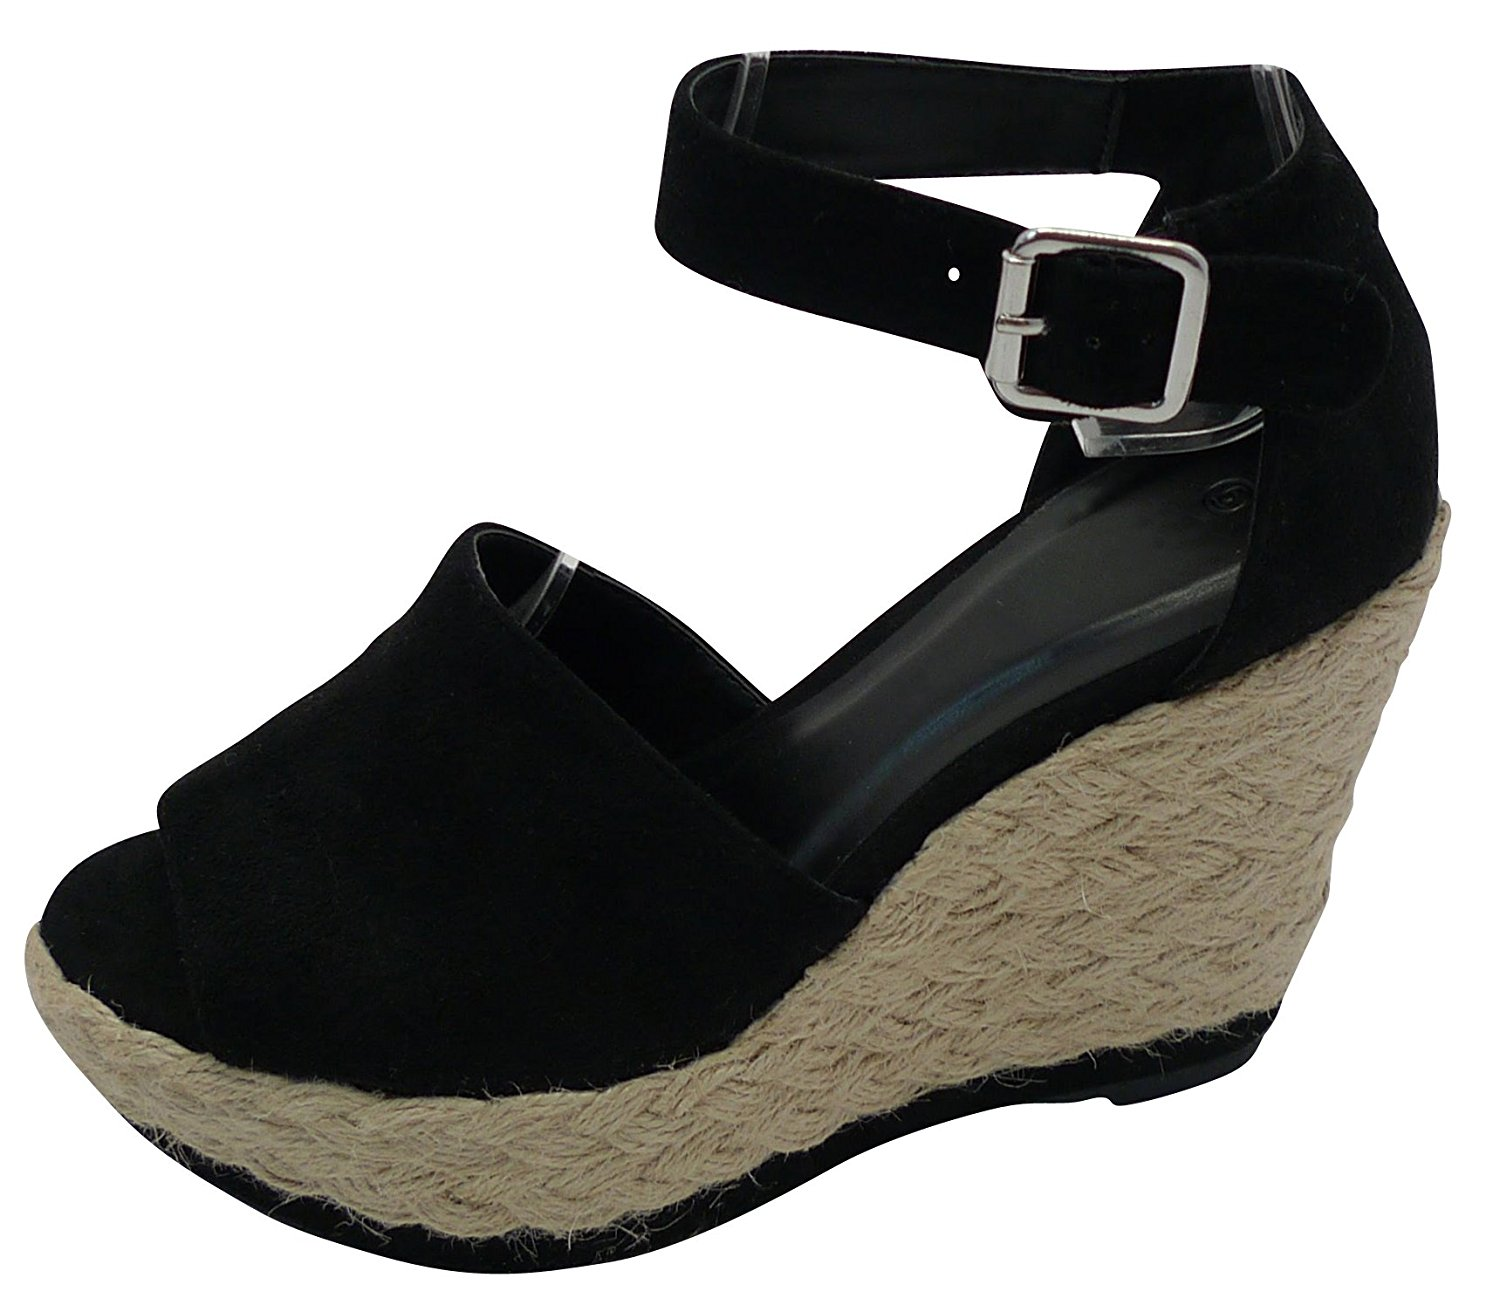 b0bc894e4c2 Get Quotations · Cambridge Select Women s Peep Toe Buckled Ankle Strap  Braided Rope Espadrille Platform Wedge Sandal